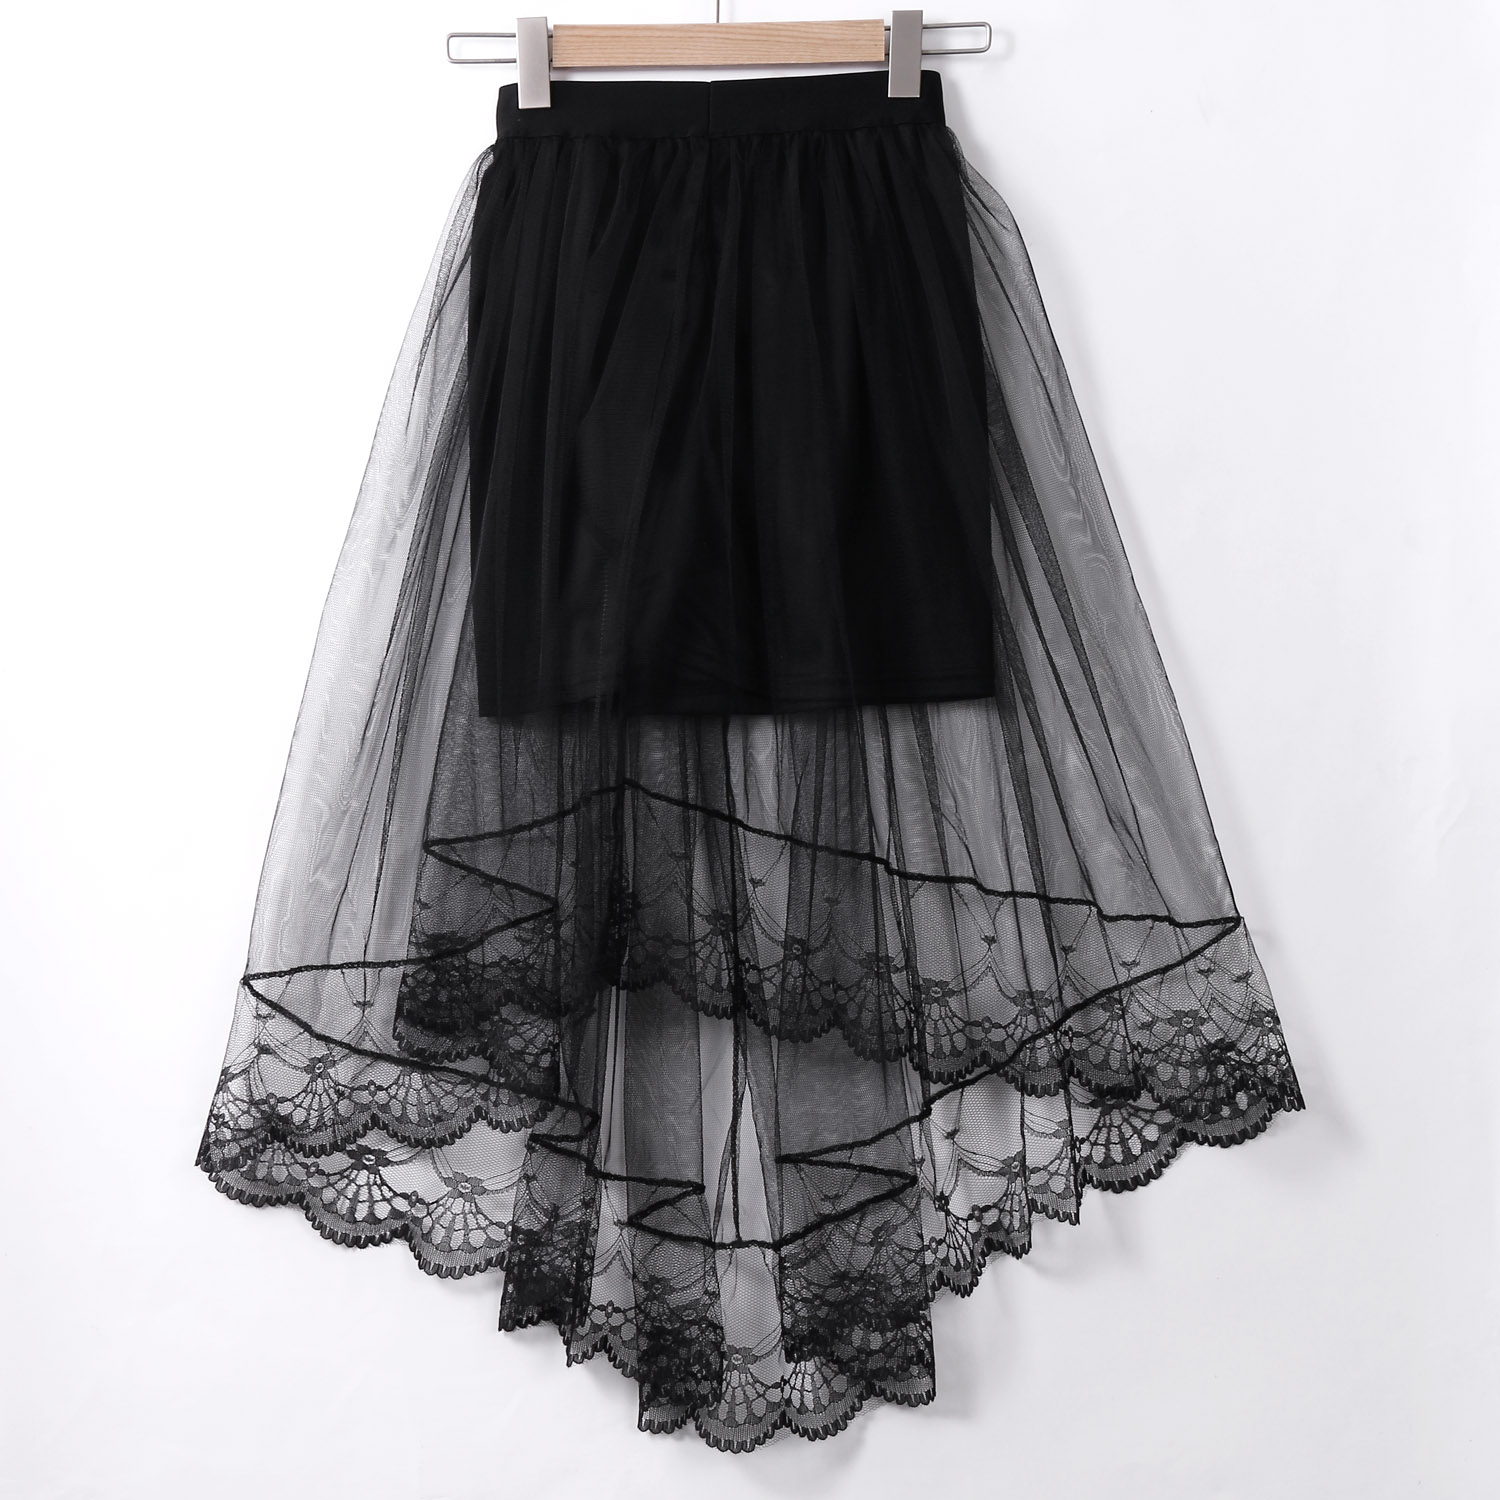 Hirigin Vintage Women Stretch Lace Up Floral High Waist Plain Skater Flared Pleated Long Skirt